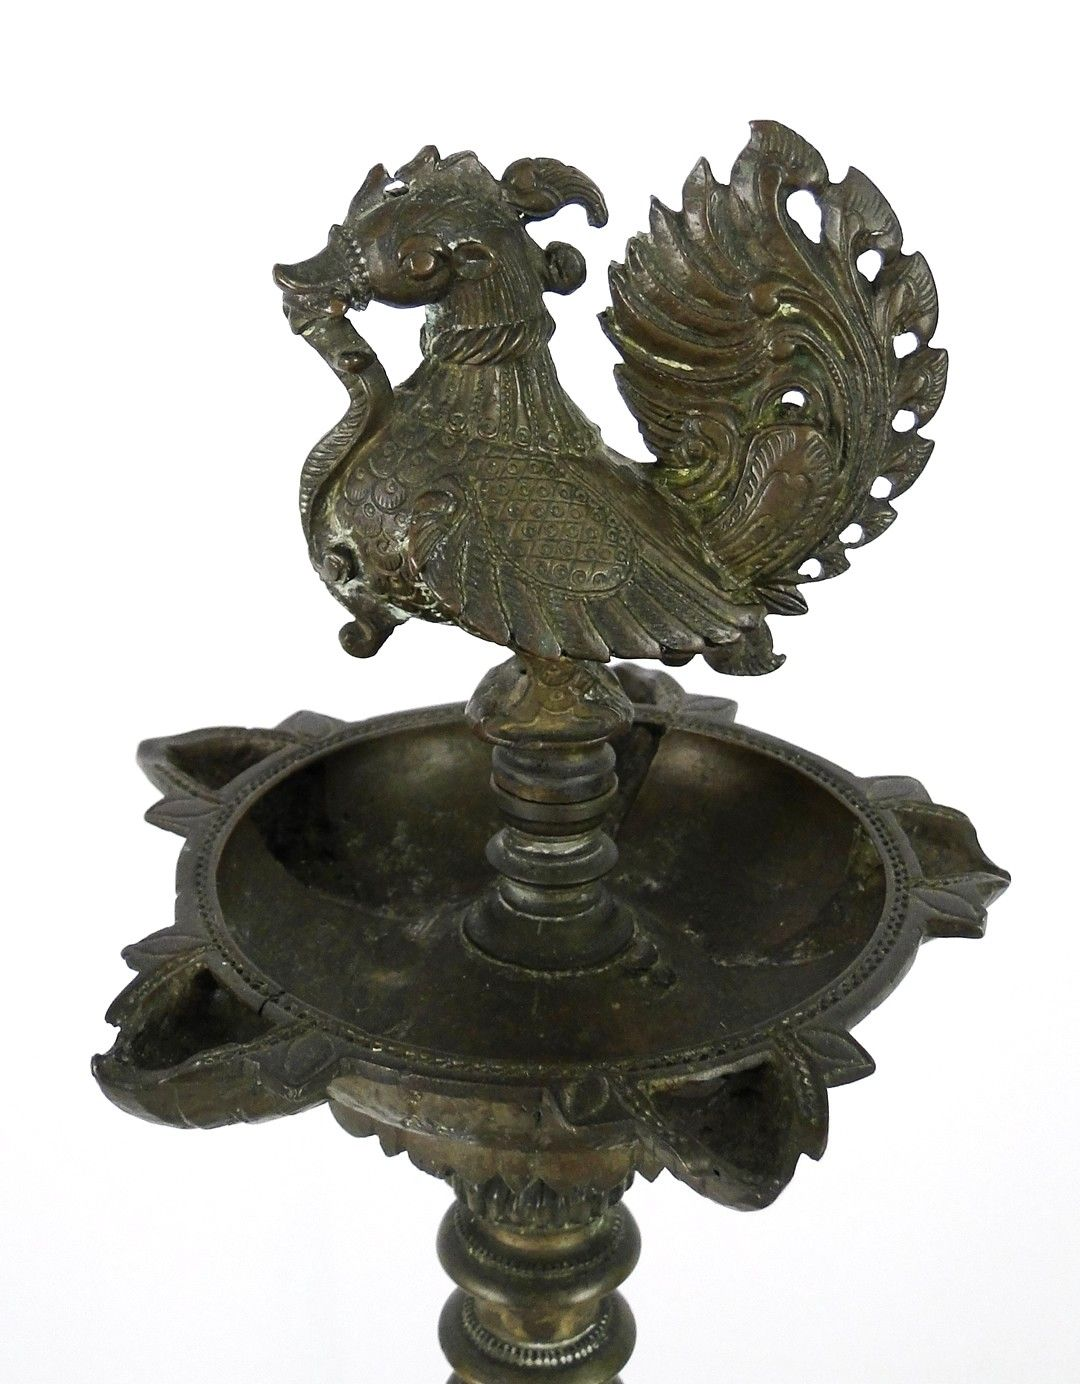 Antiques Antique Hindu Hanging Lamp Traditional Indian Ritual Bronze